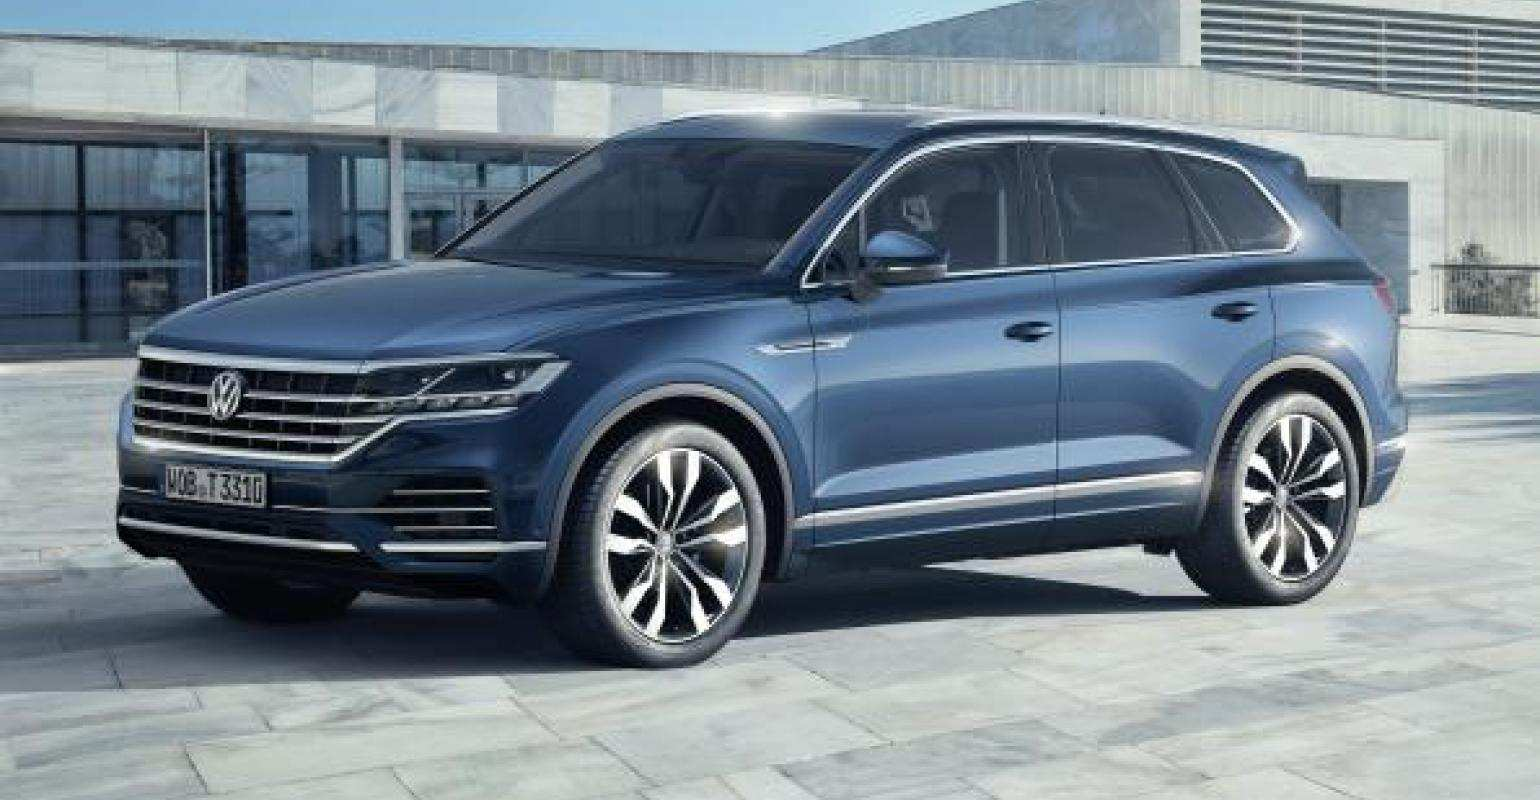 89 Great Volkswagen 2020 Touareg Exterior New Review for Volkswagen 2020 Touareg Exterior